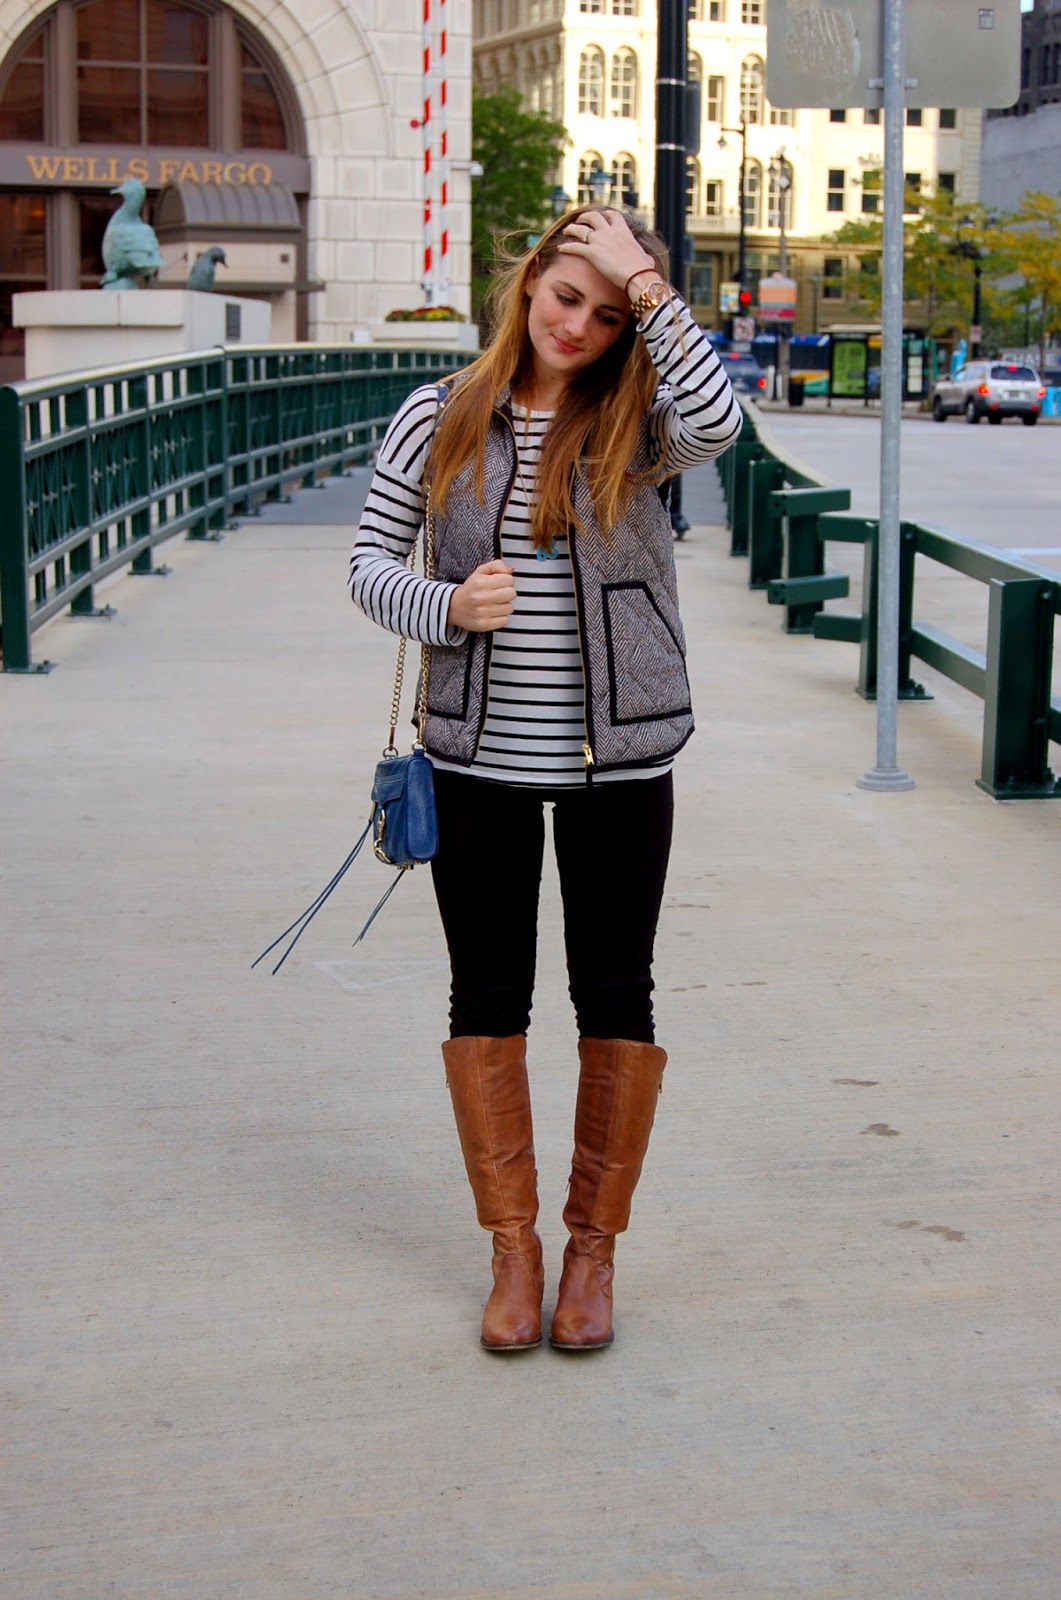 herringbone vest and a striped top